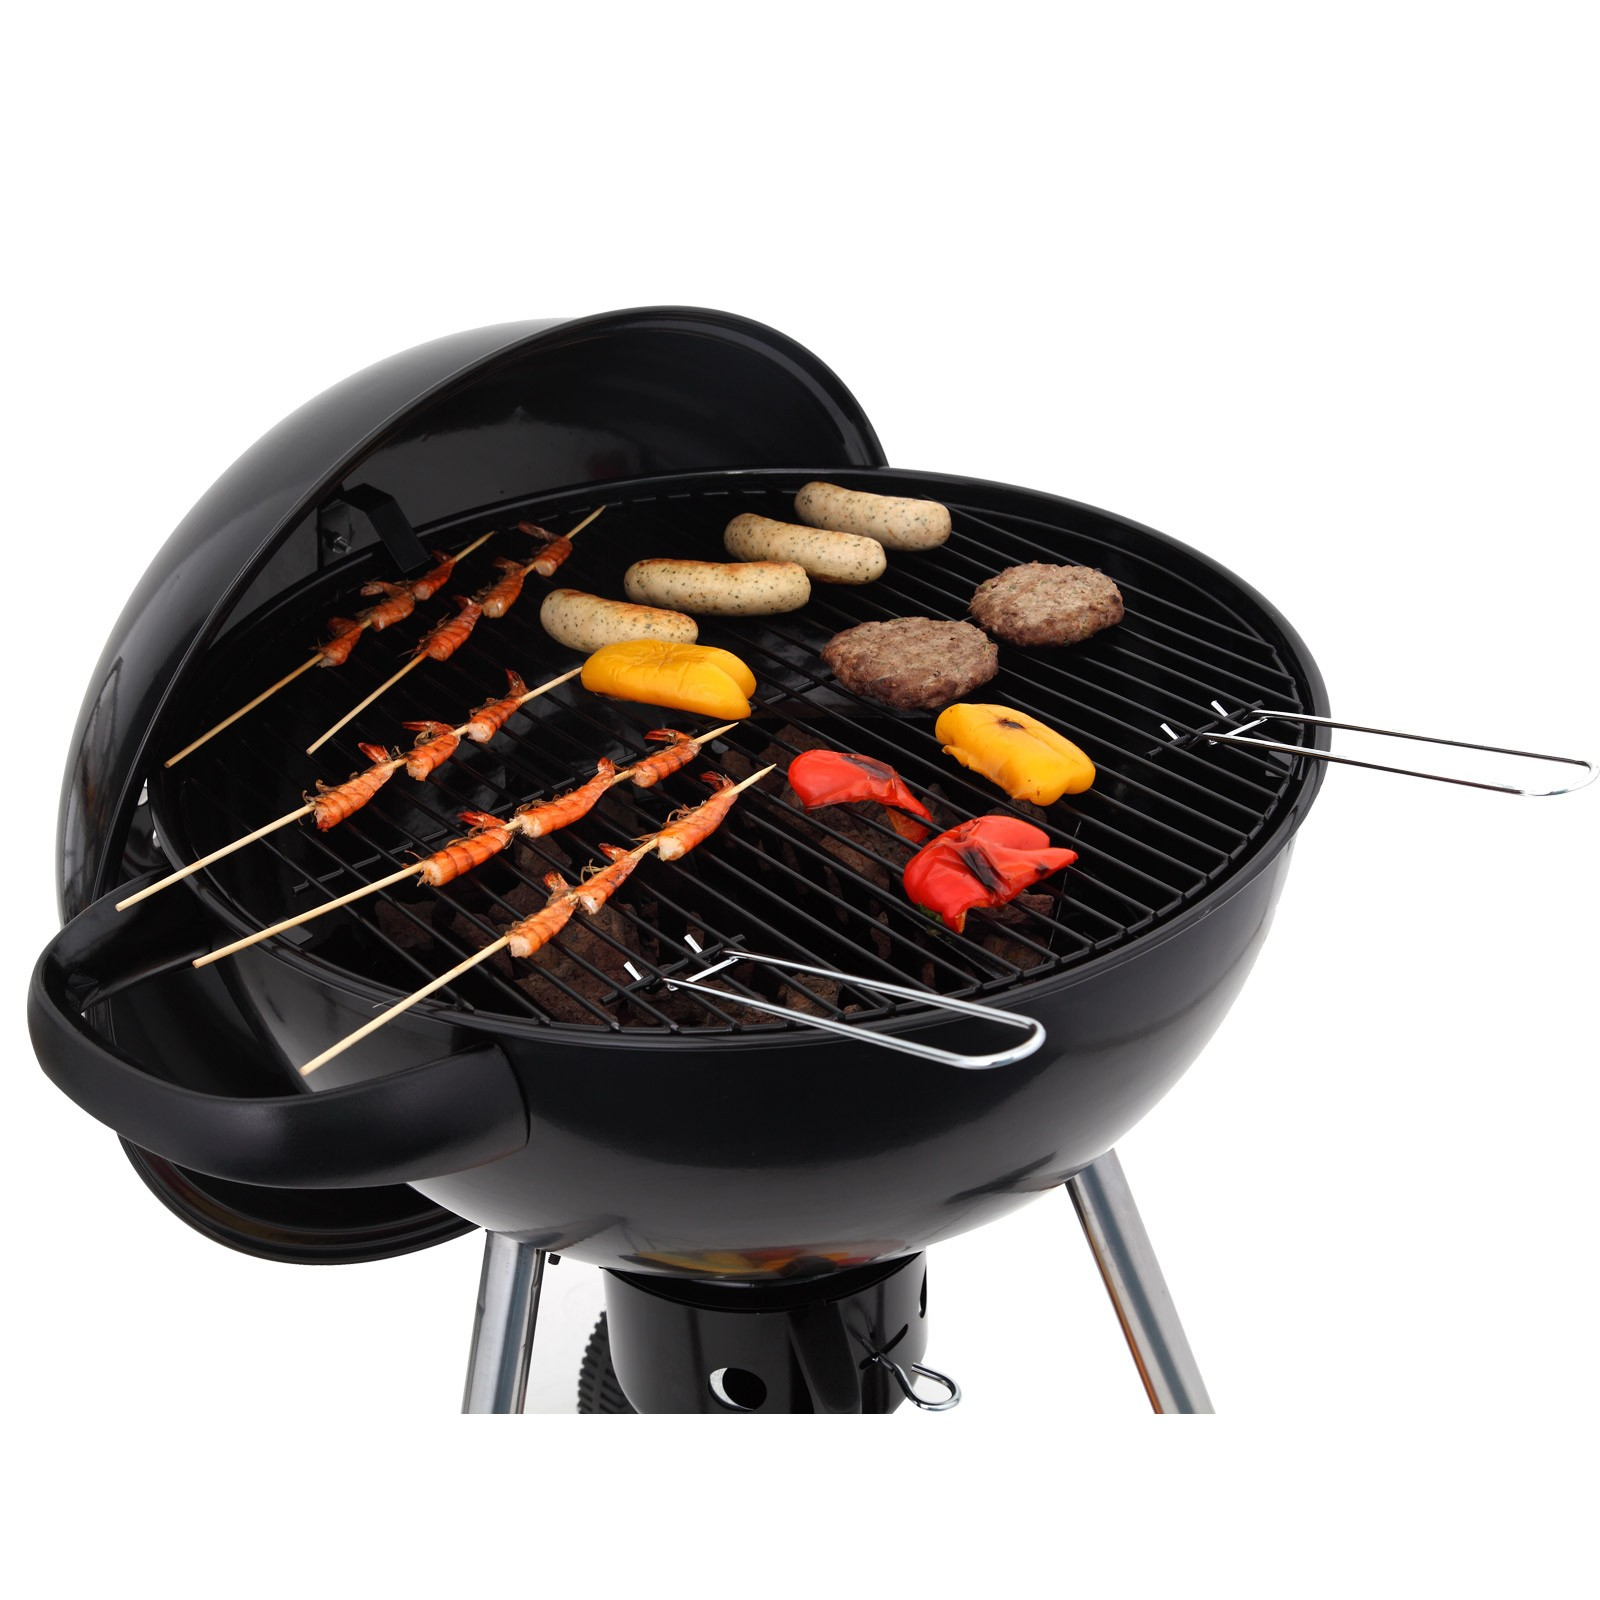 tepro holzkohlengrill kugelgrill tucson bbq grill grillwagen camping kohlegrill 4011964108516 ebay. Black Bedroom Furniture Sets. Home Design Ideas